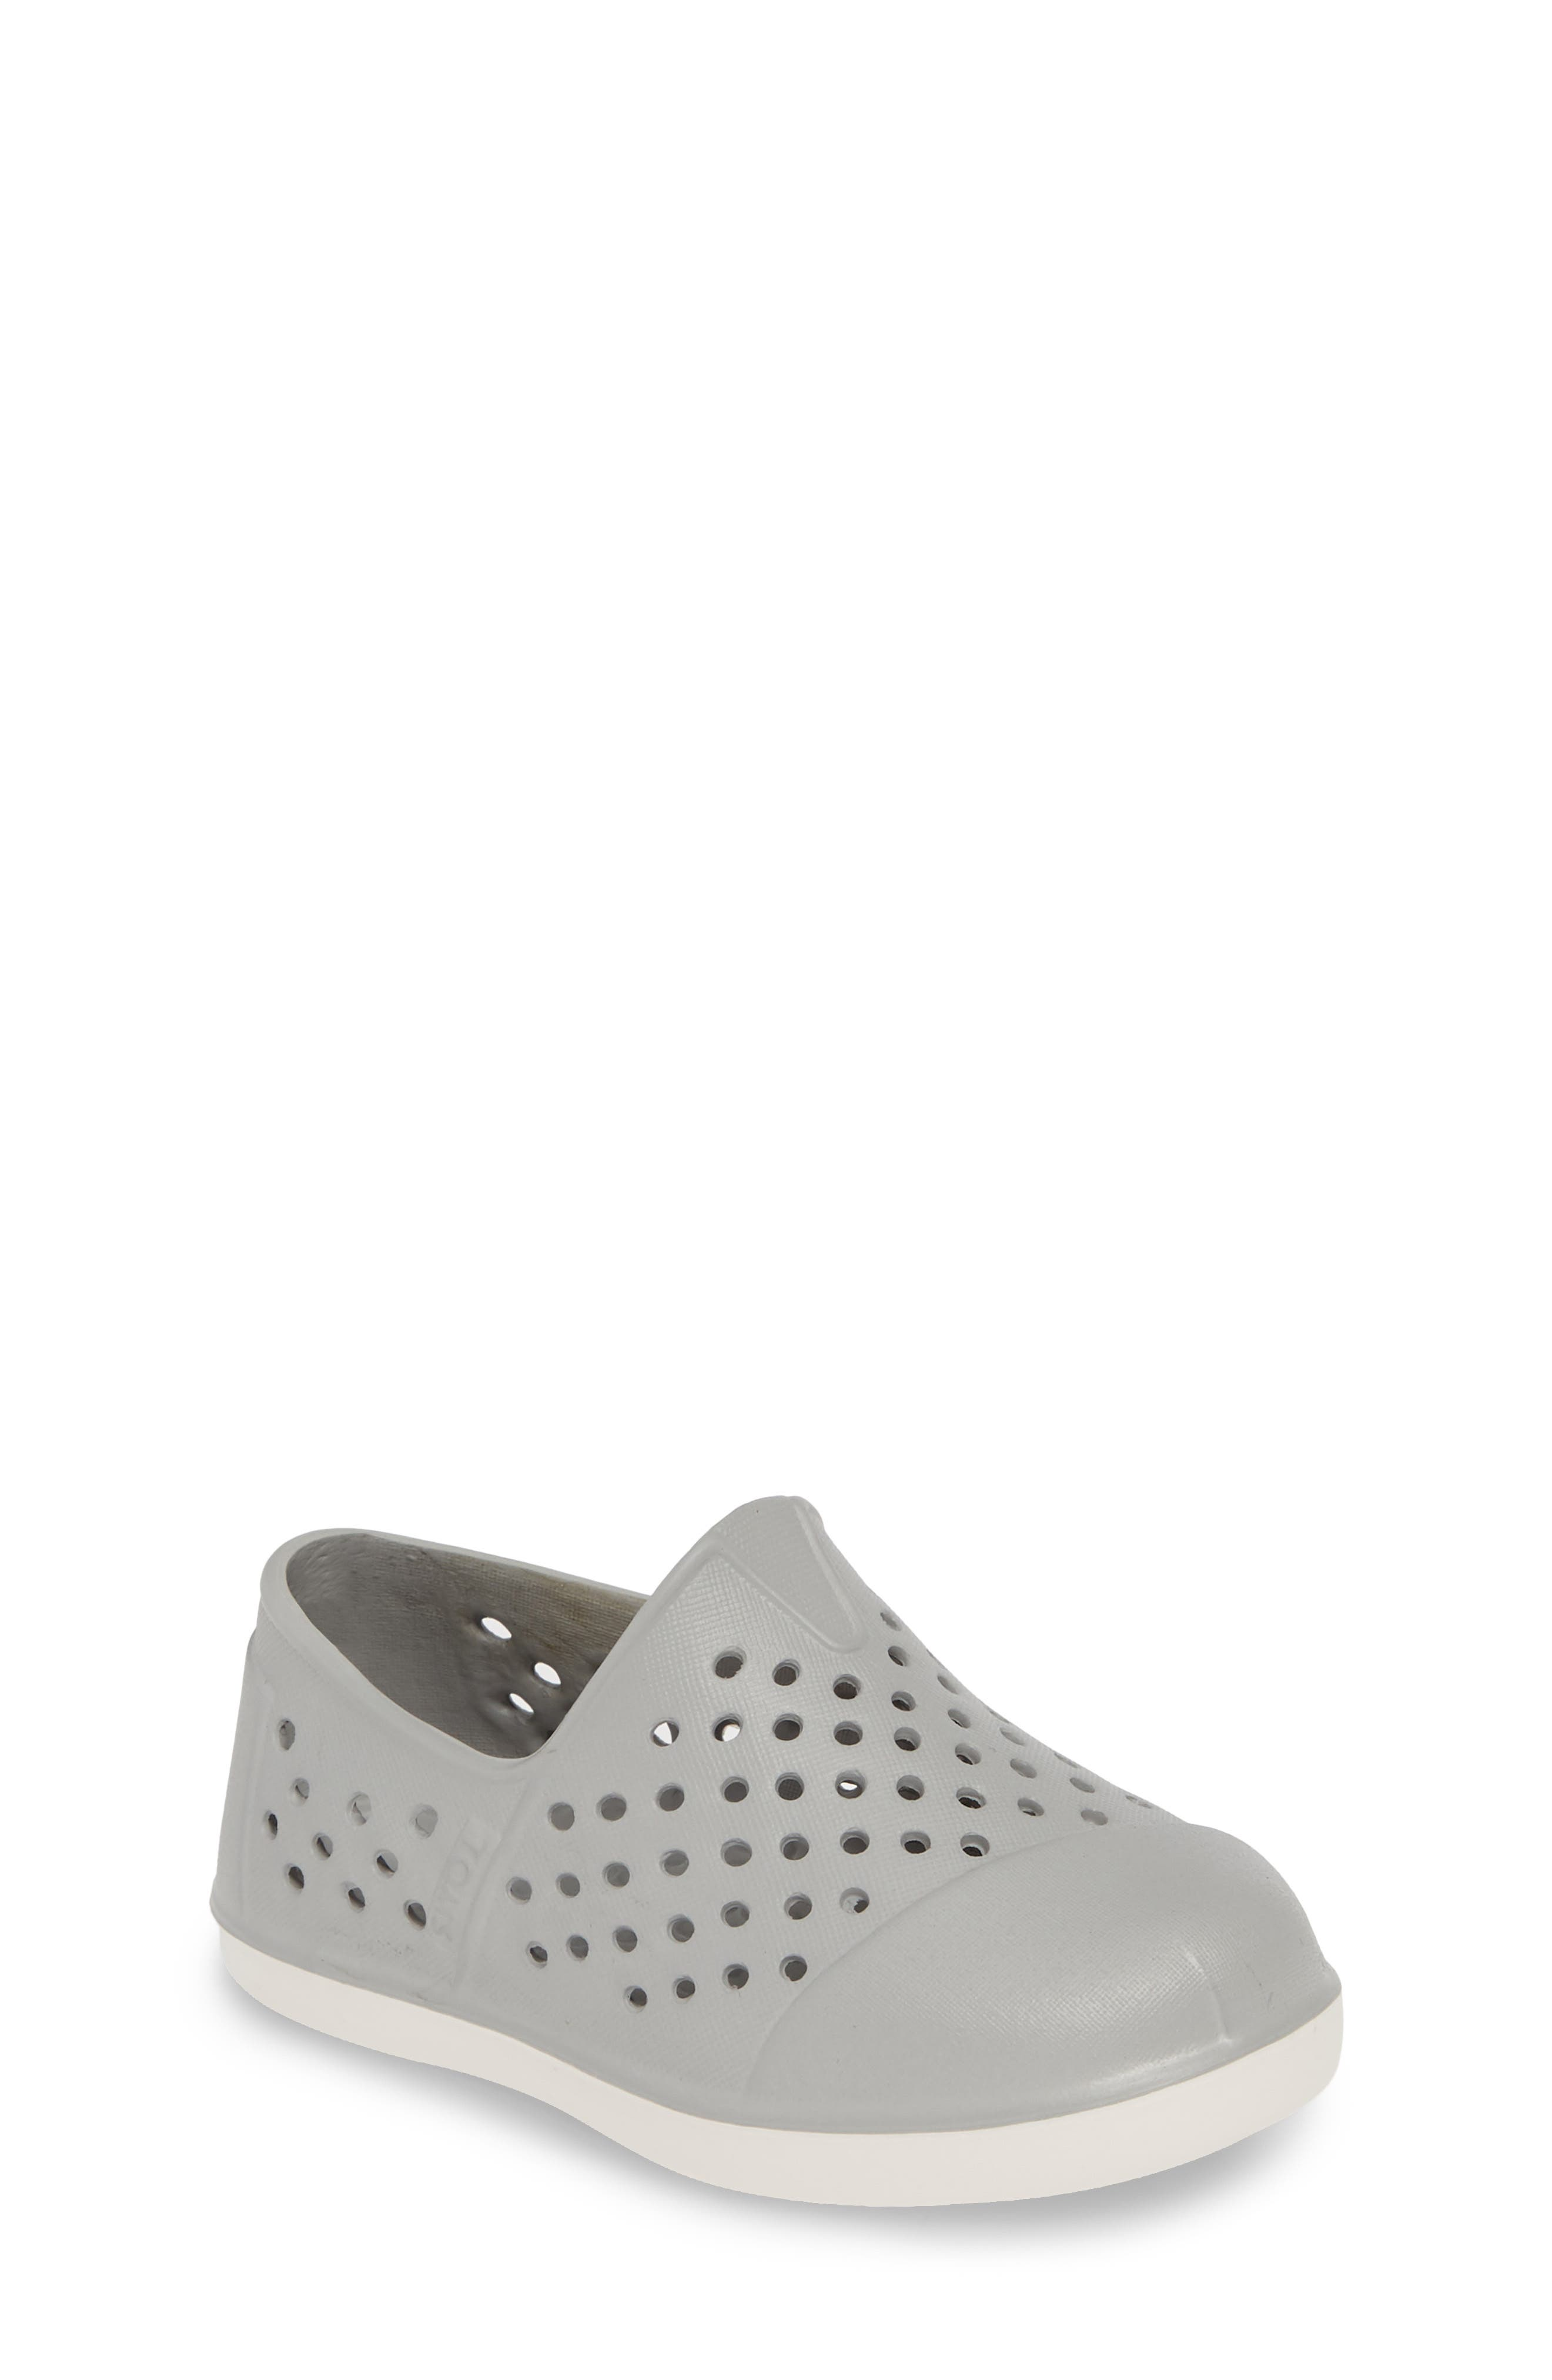 TOMS 'Romper' Slip-On, Main, color, GREY